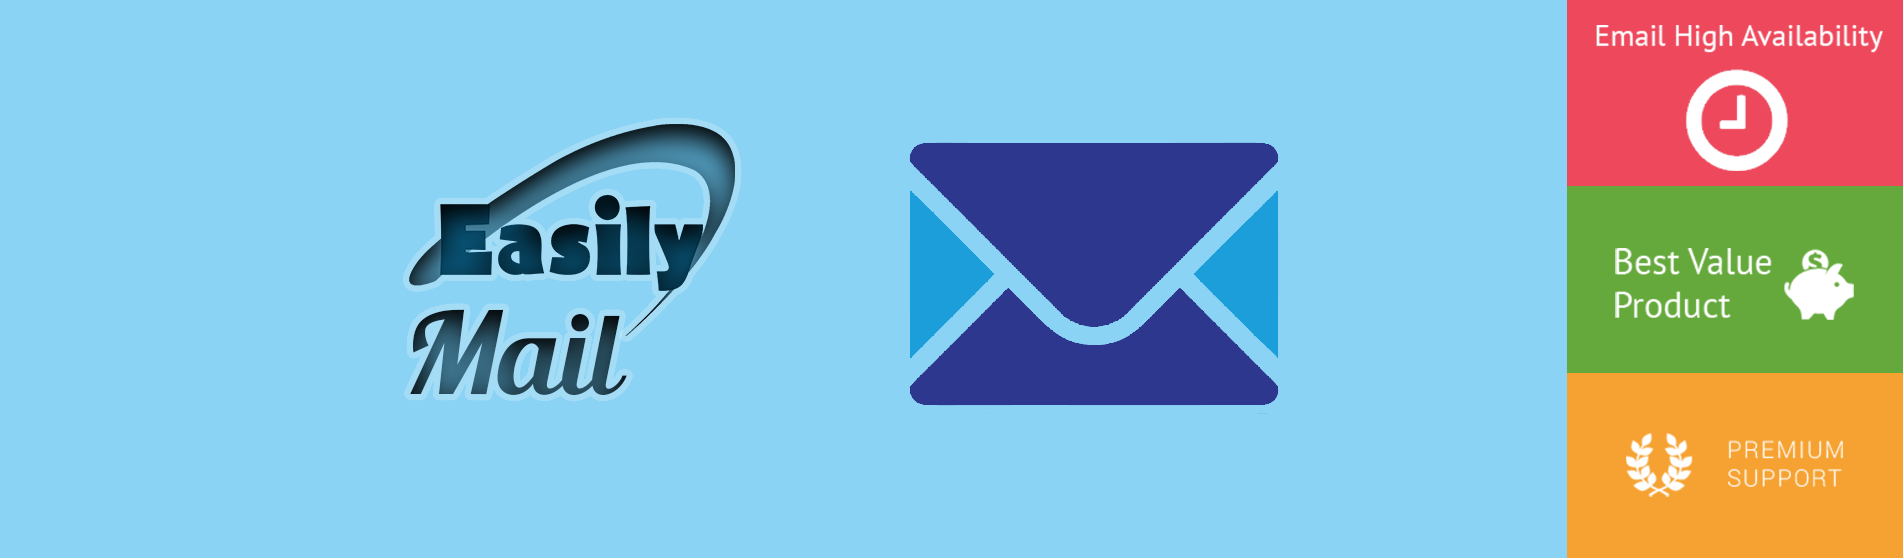 how to create my own email address domain